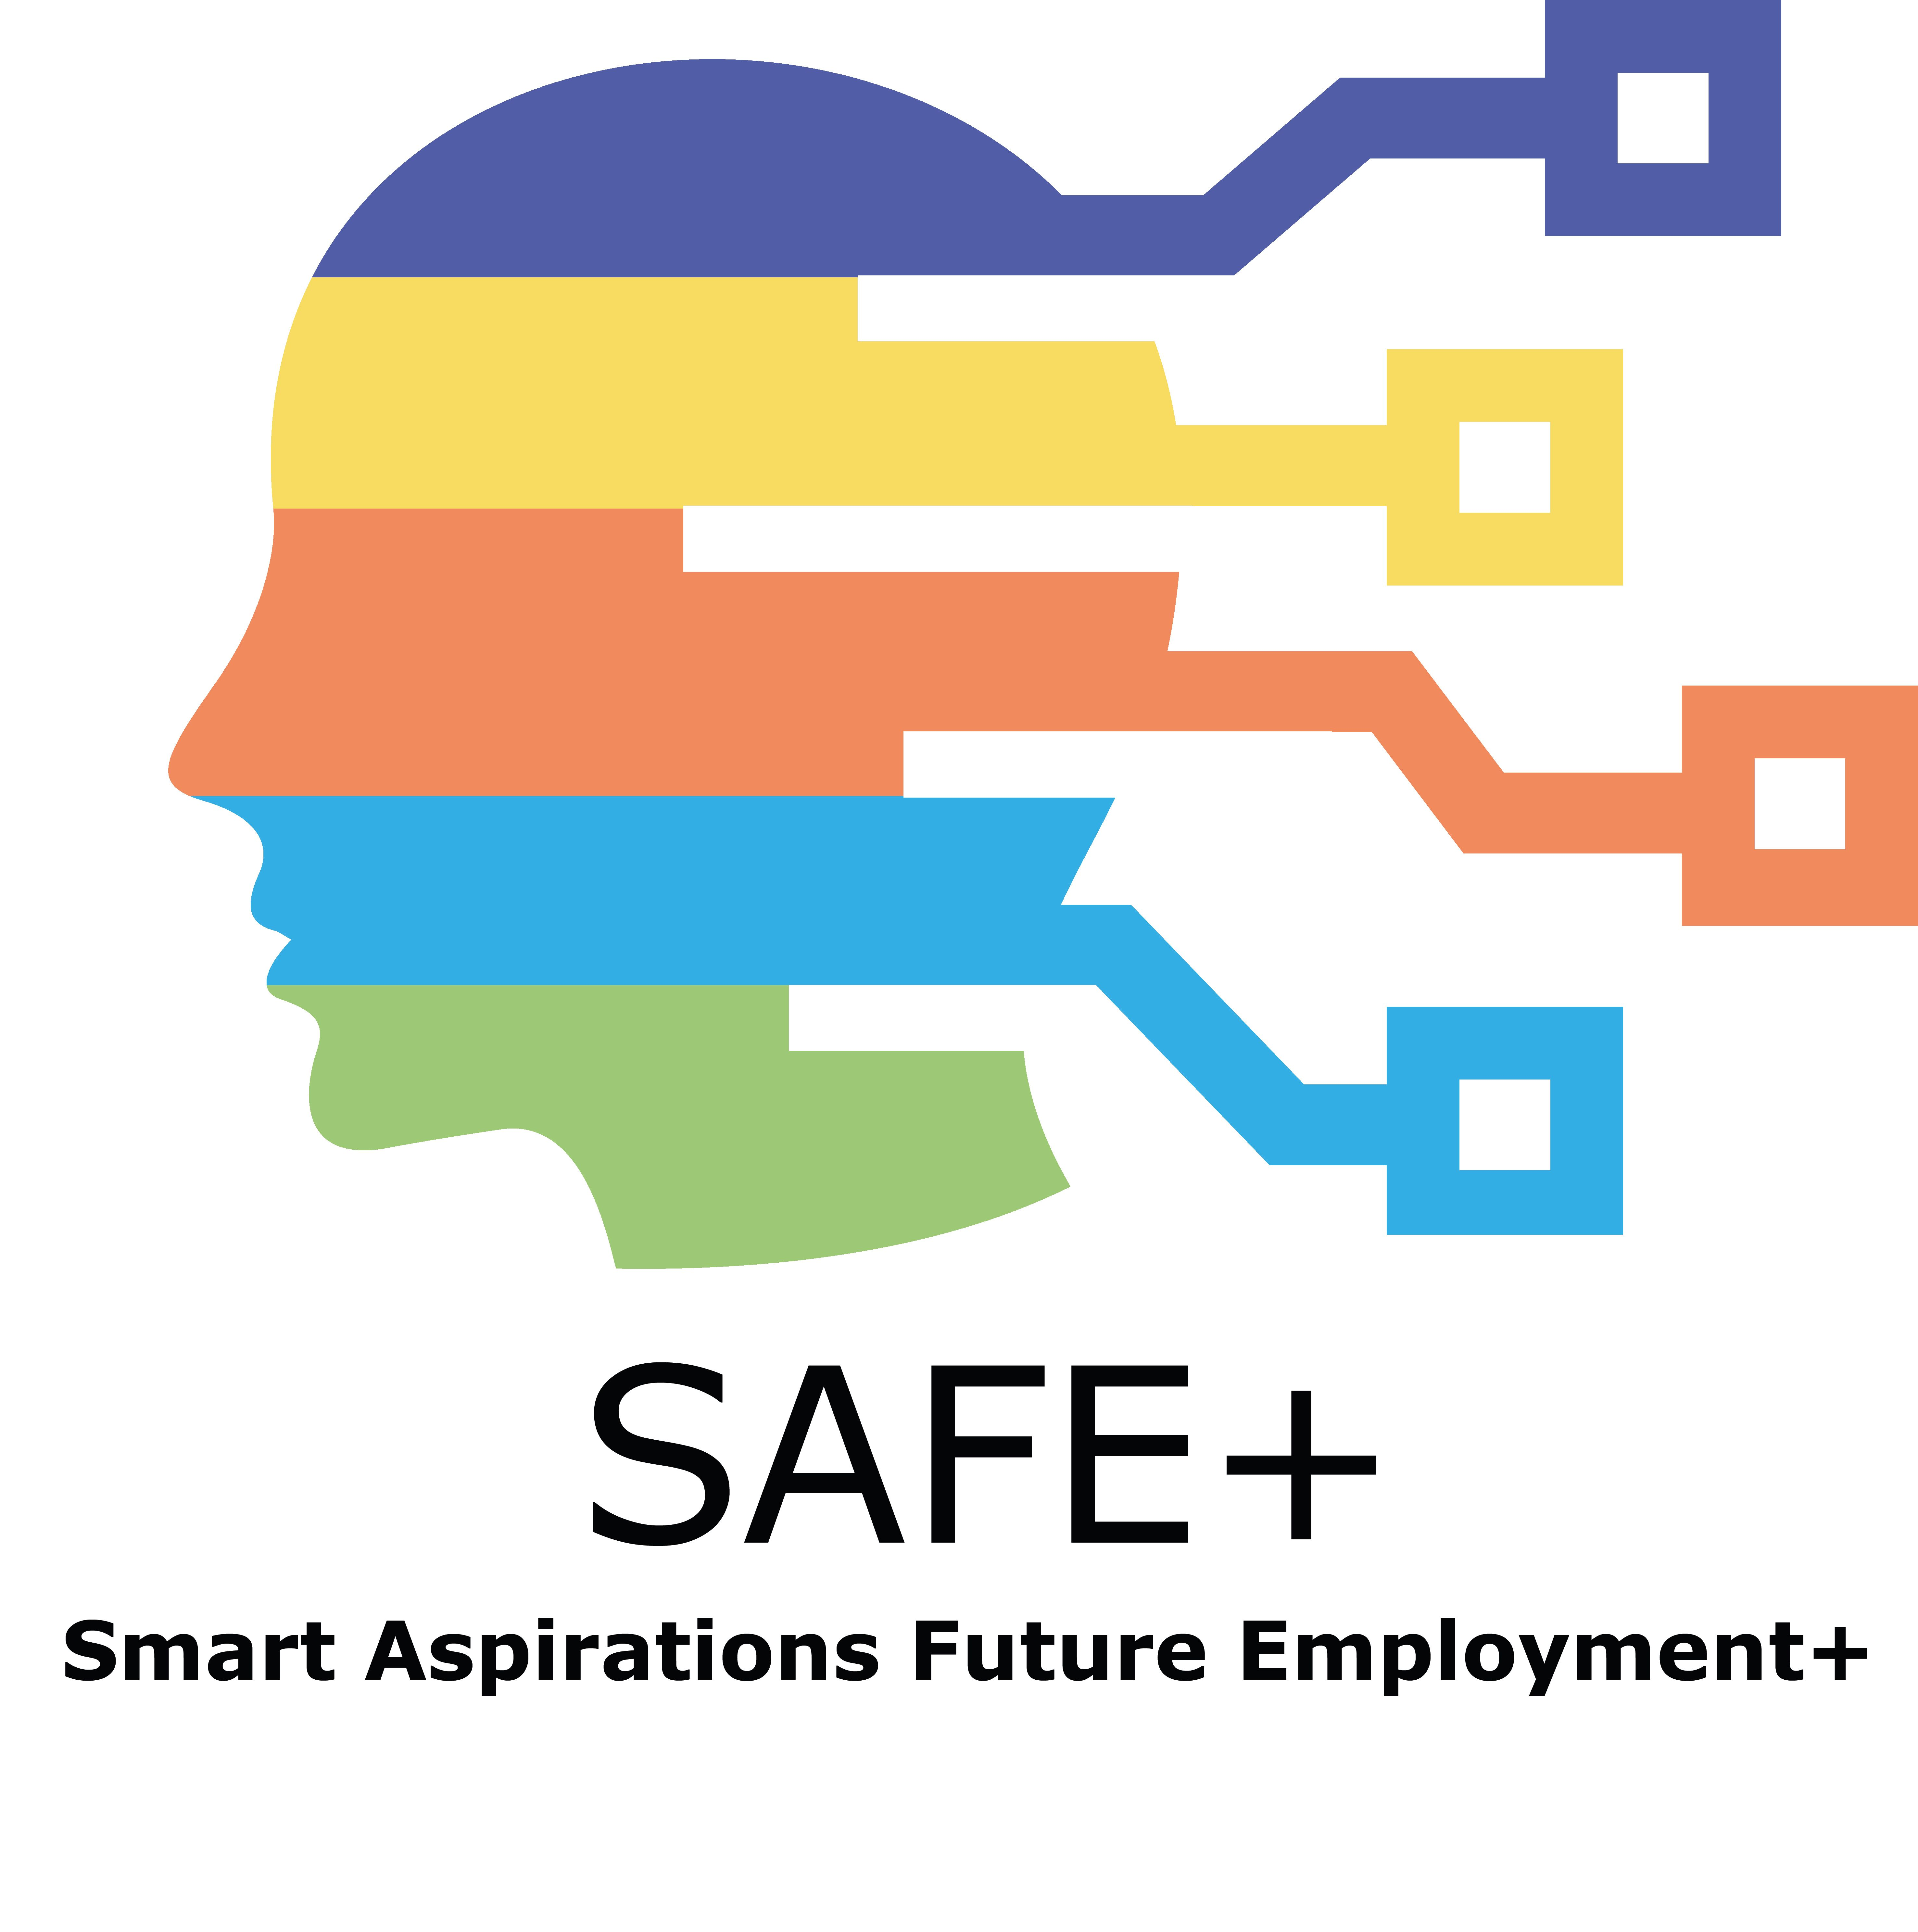 Smart Aspirations Future Employment (SAFE+ )